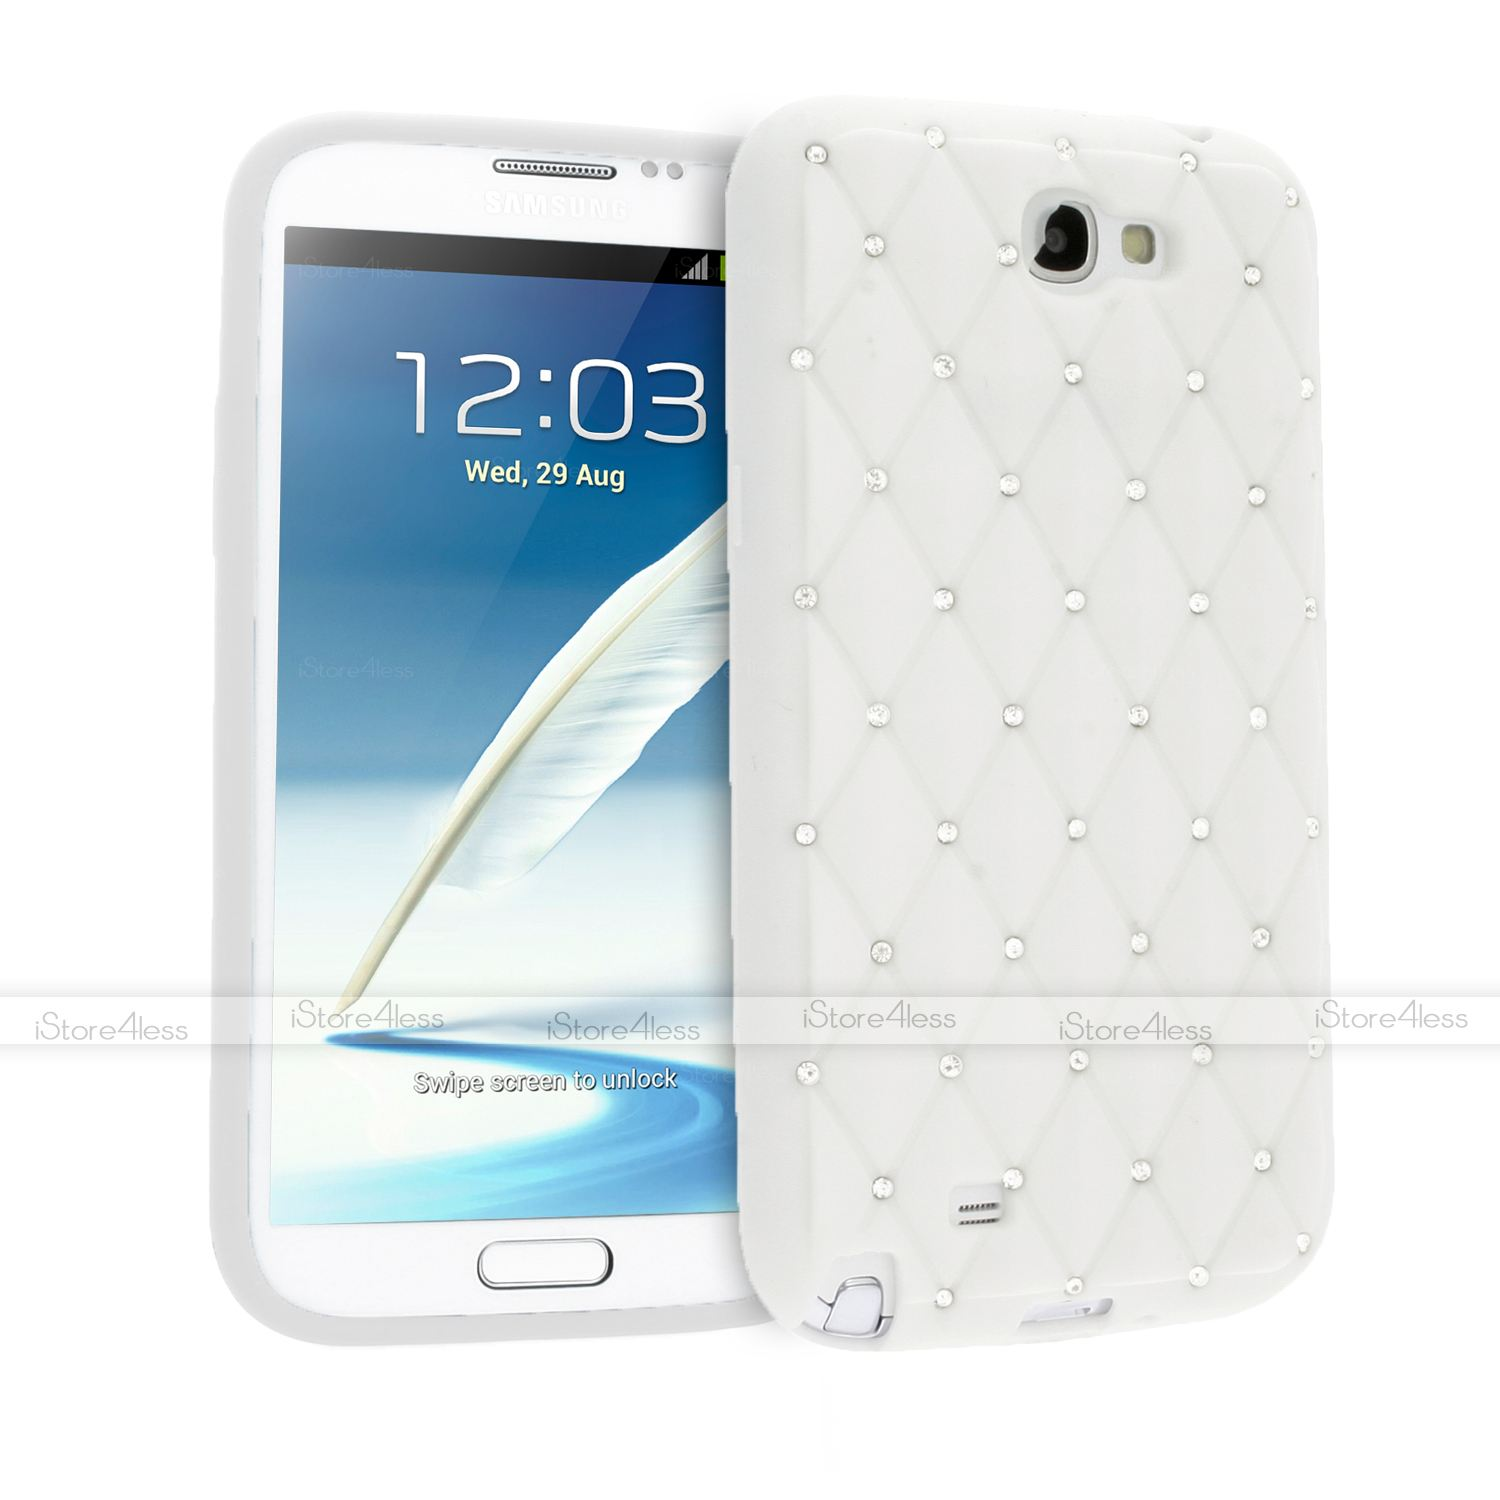 new style d1848 1346a Details about SPARKLE CRYSTAL DIAMOND BLING SOFT SILICONE CASE FOR SAMSUNG  GALAXY NOTE 2 N7100